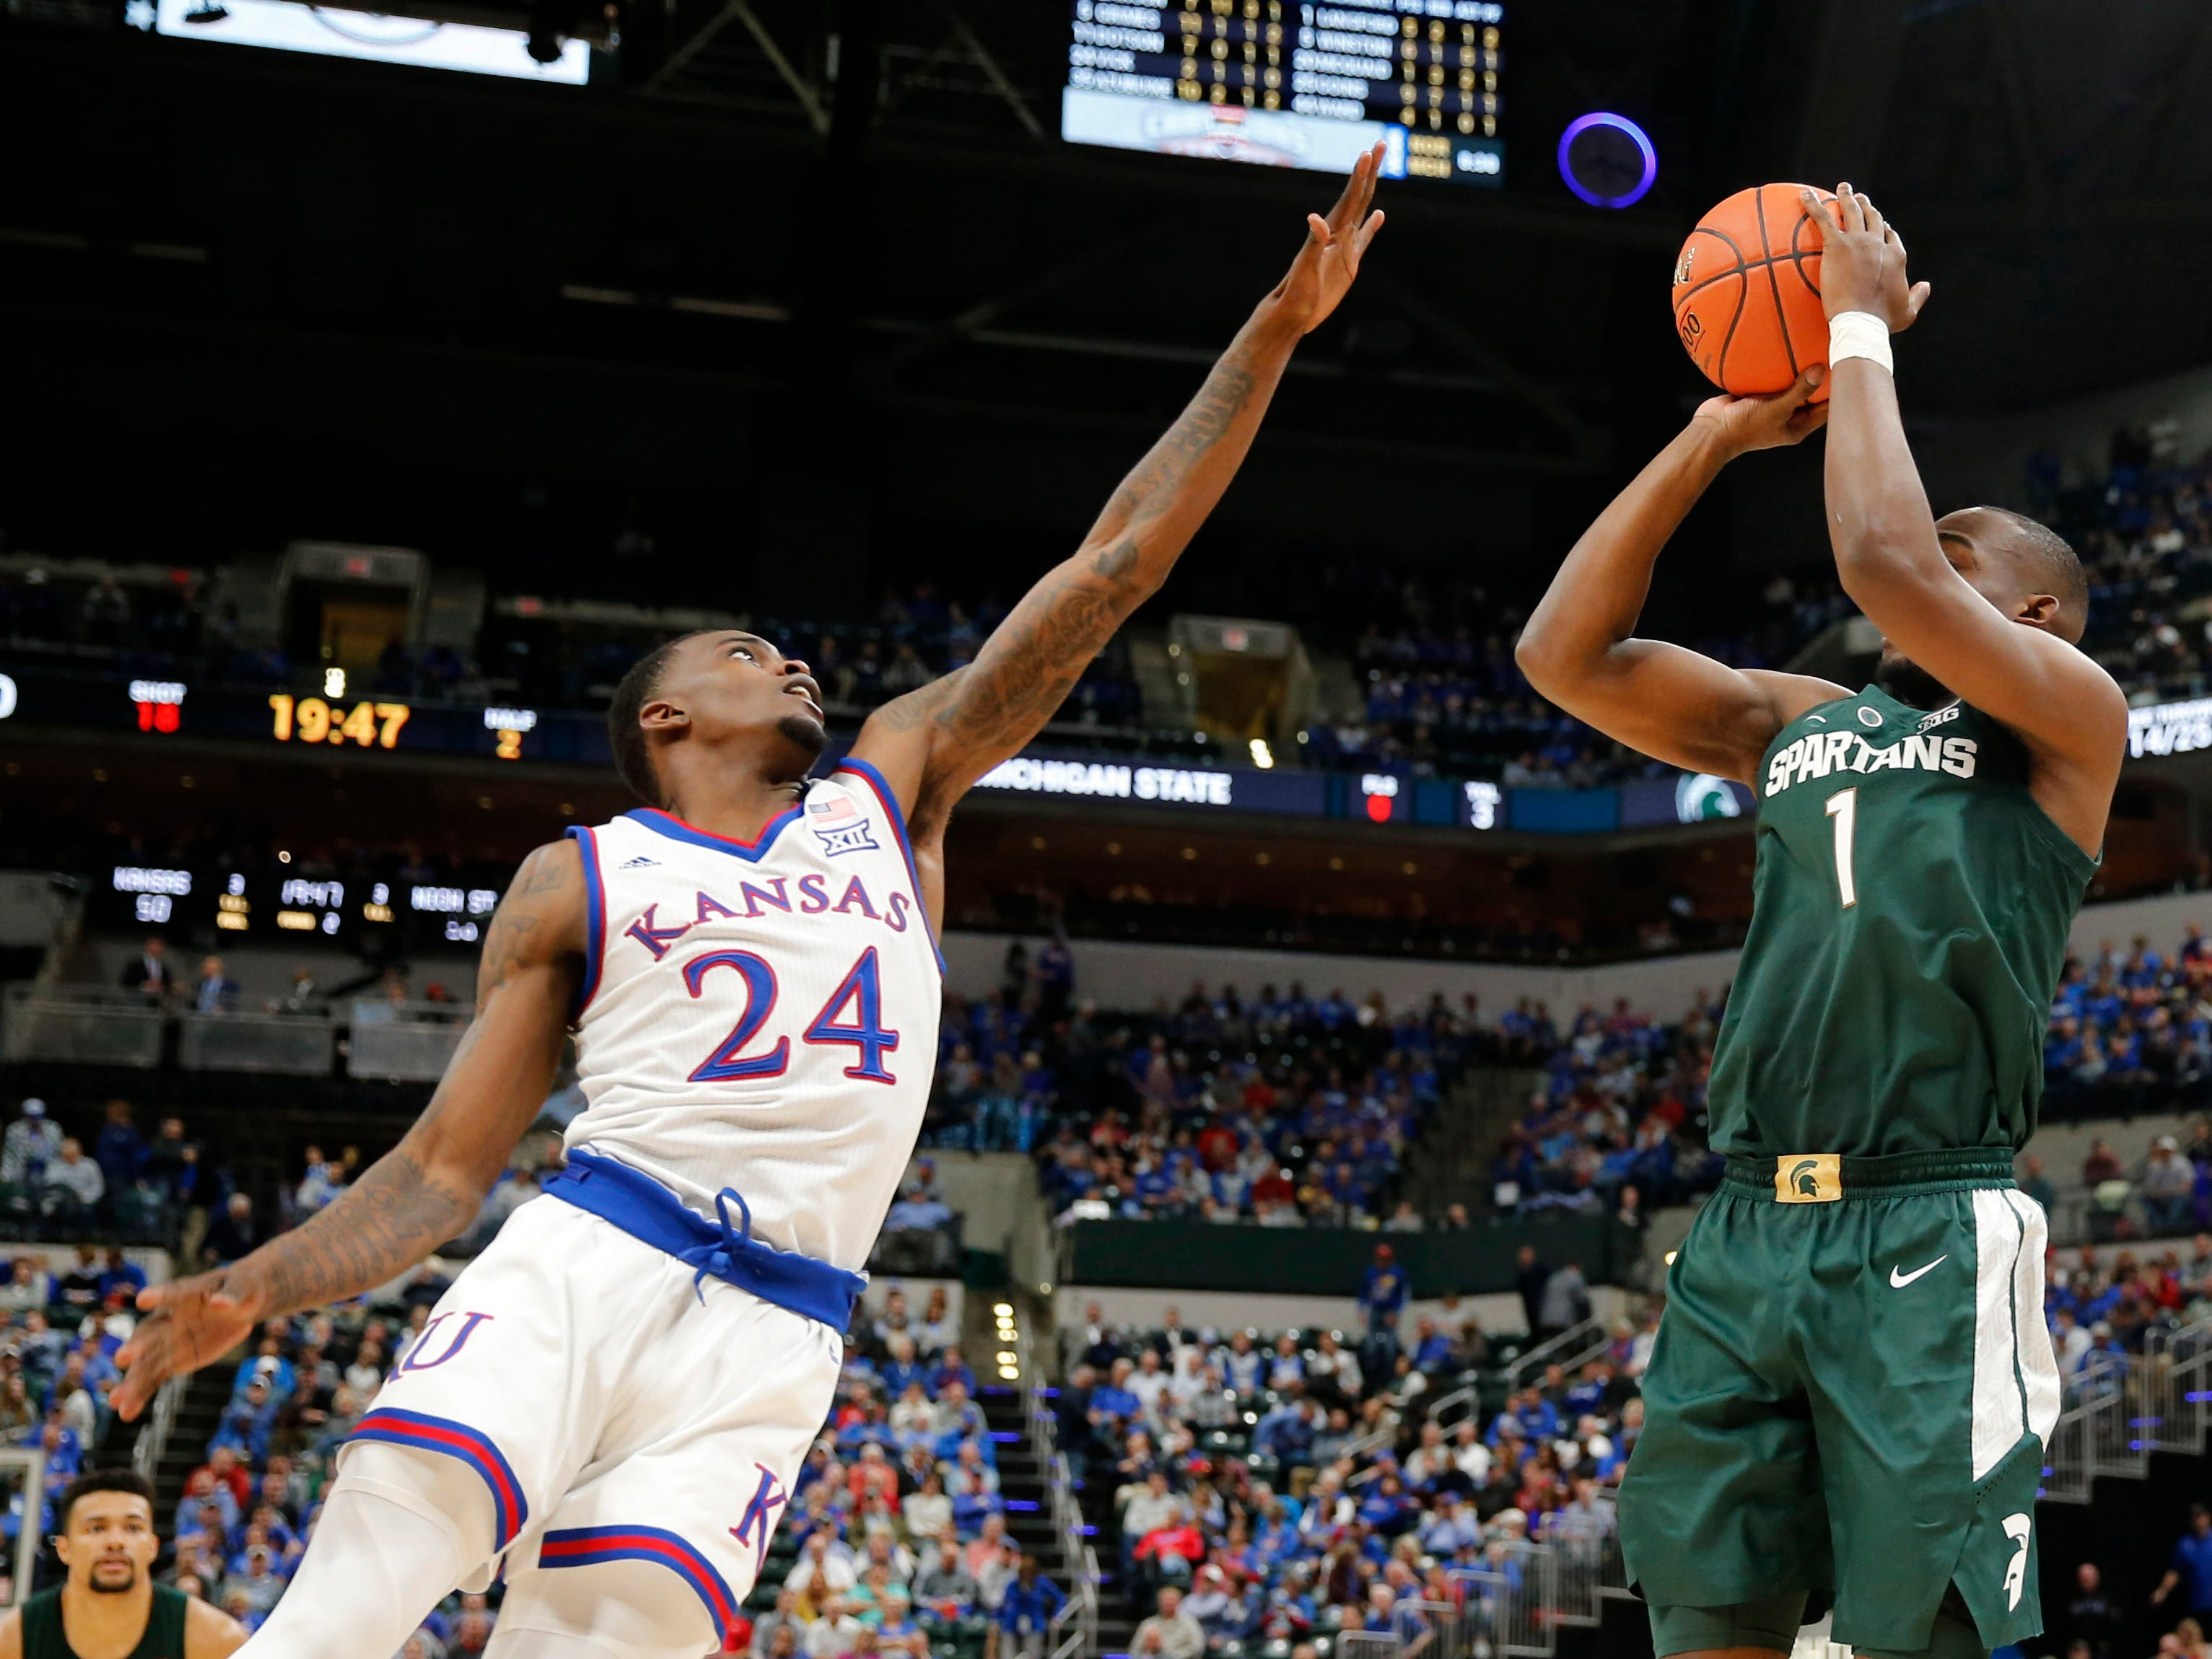 Michigan State Spartans guard Joshua Langford (1) takes a shot against Kansas Jayhawks guard Lagerald Vick (24) in the second half during the Champions Classic at Bankers Life Fieldhouse.